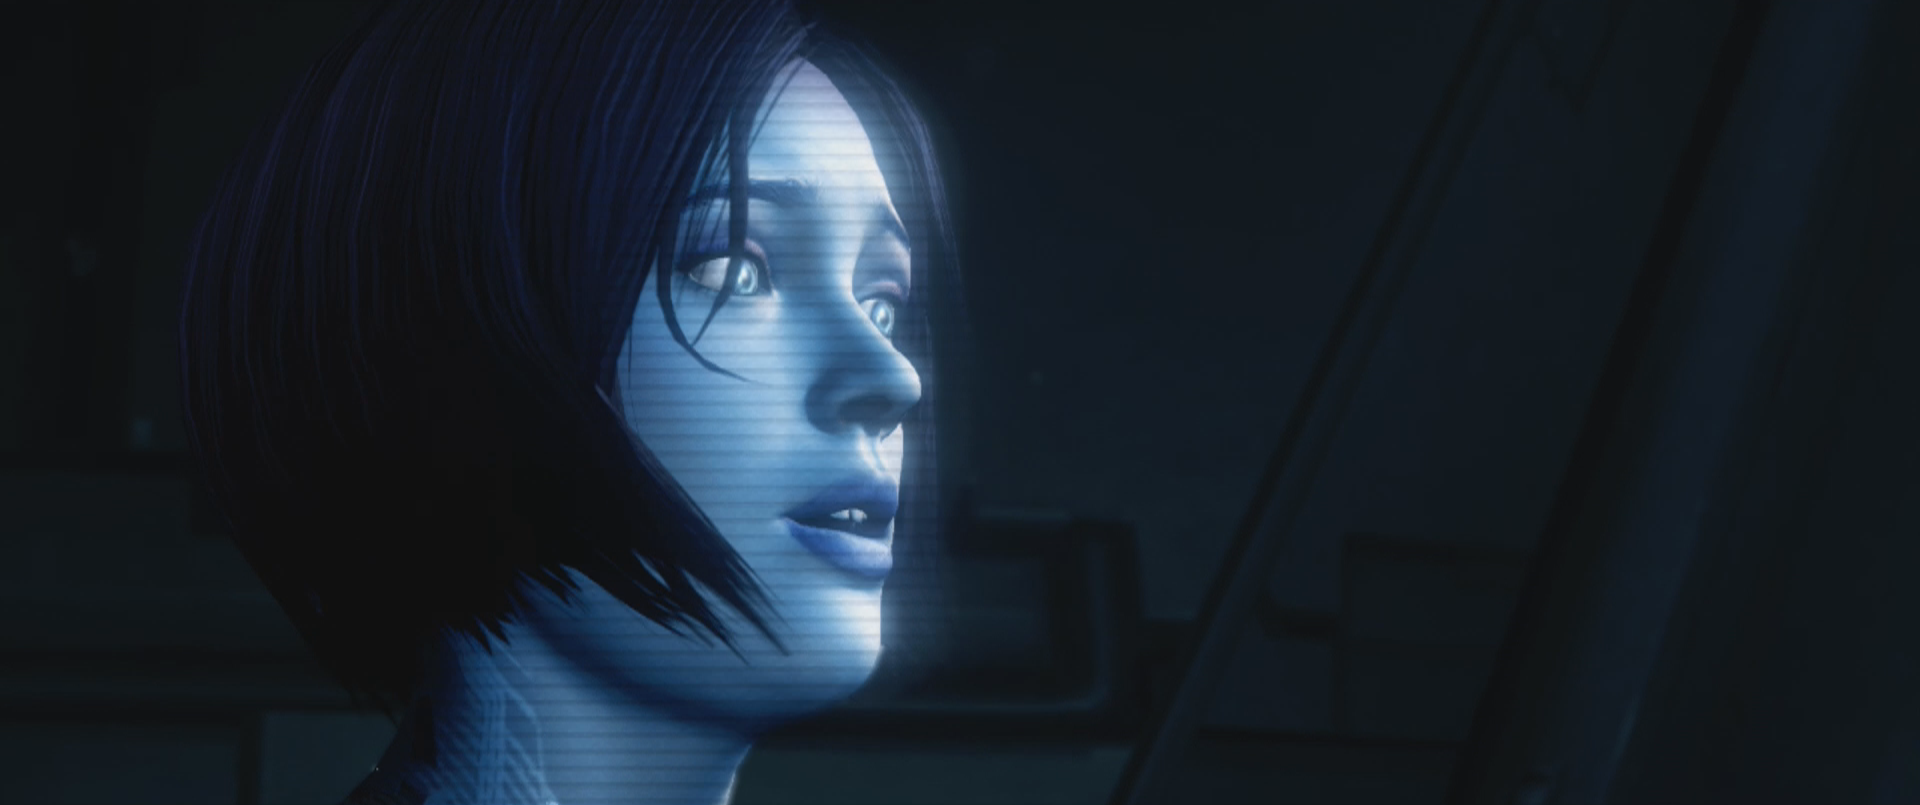 How To Enable Cortana If Youre Using Windows 10 Outside The U S